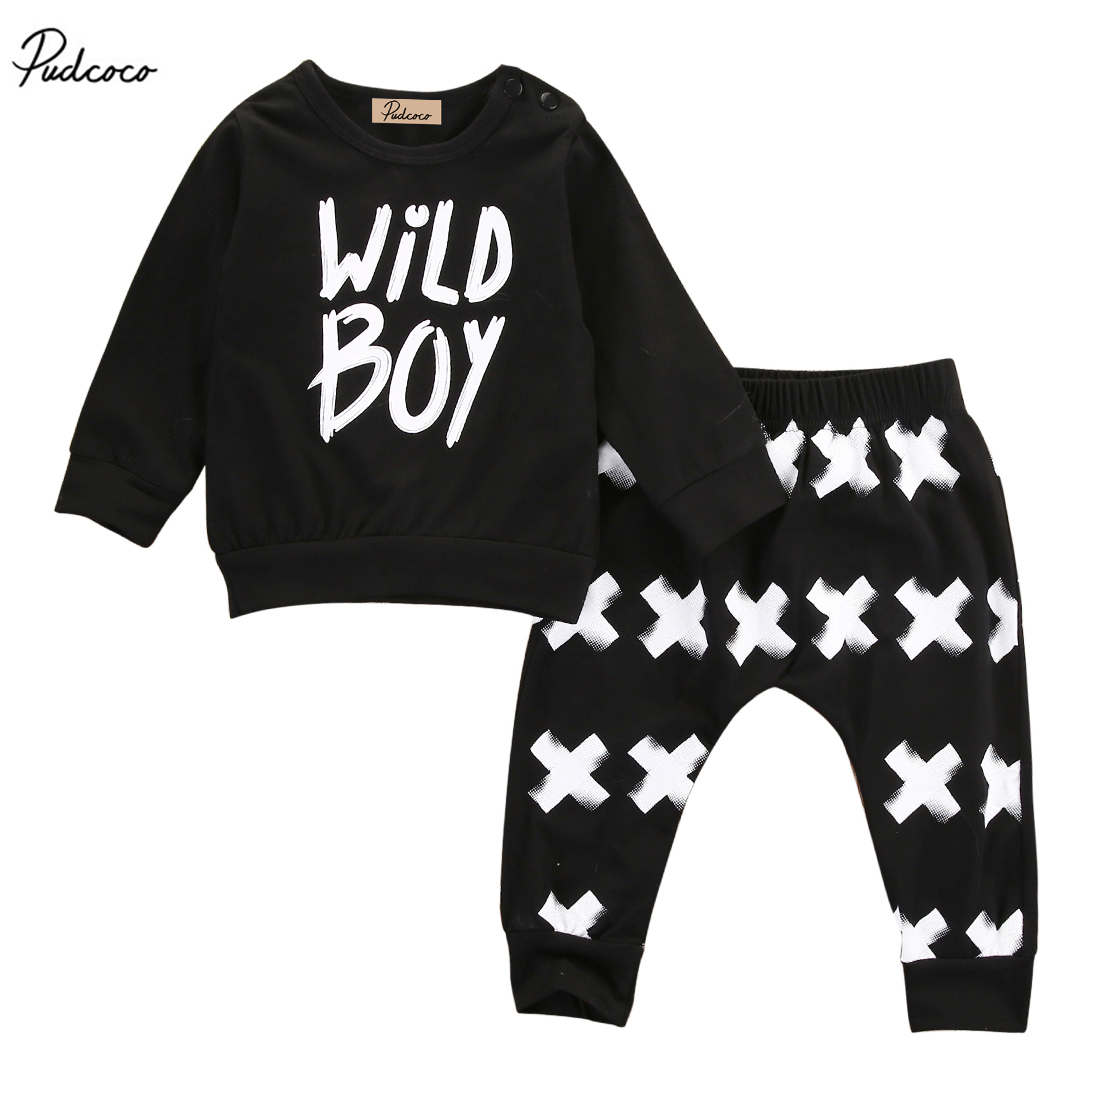 Wild Boy Newborn Baby Boys Infant Long Sleeve T-Shirt Tops X Print Pants Clothes Outfit Set 0-24M organic airplane newborn baby boy girl clothes set tops t shirt pants long sleeve cotton blue 2pcs outfits baby boys set